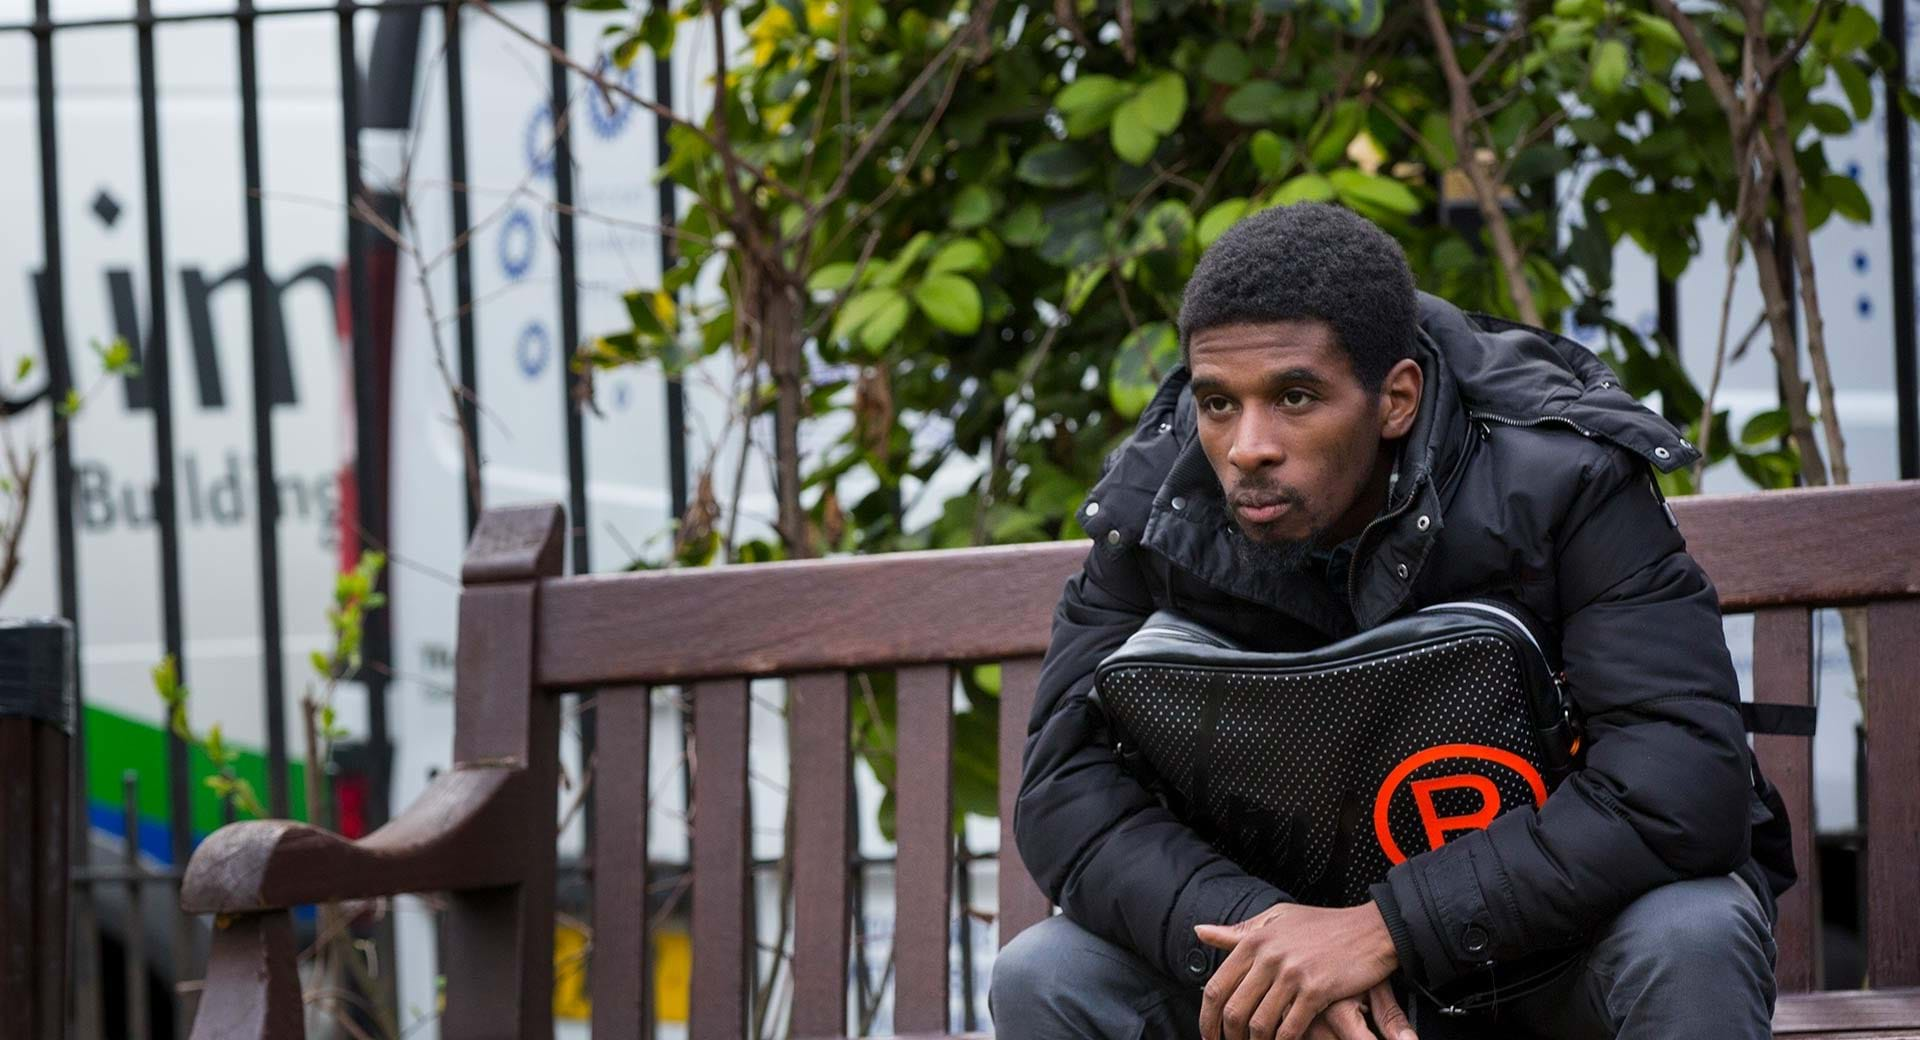 An image of Josh, who used to be a homeless young person. The youth homelessness charity Centrepoint helped him recover and get back on his feet.